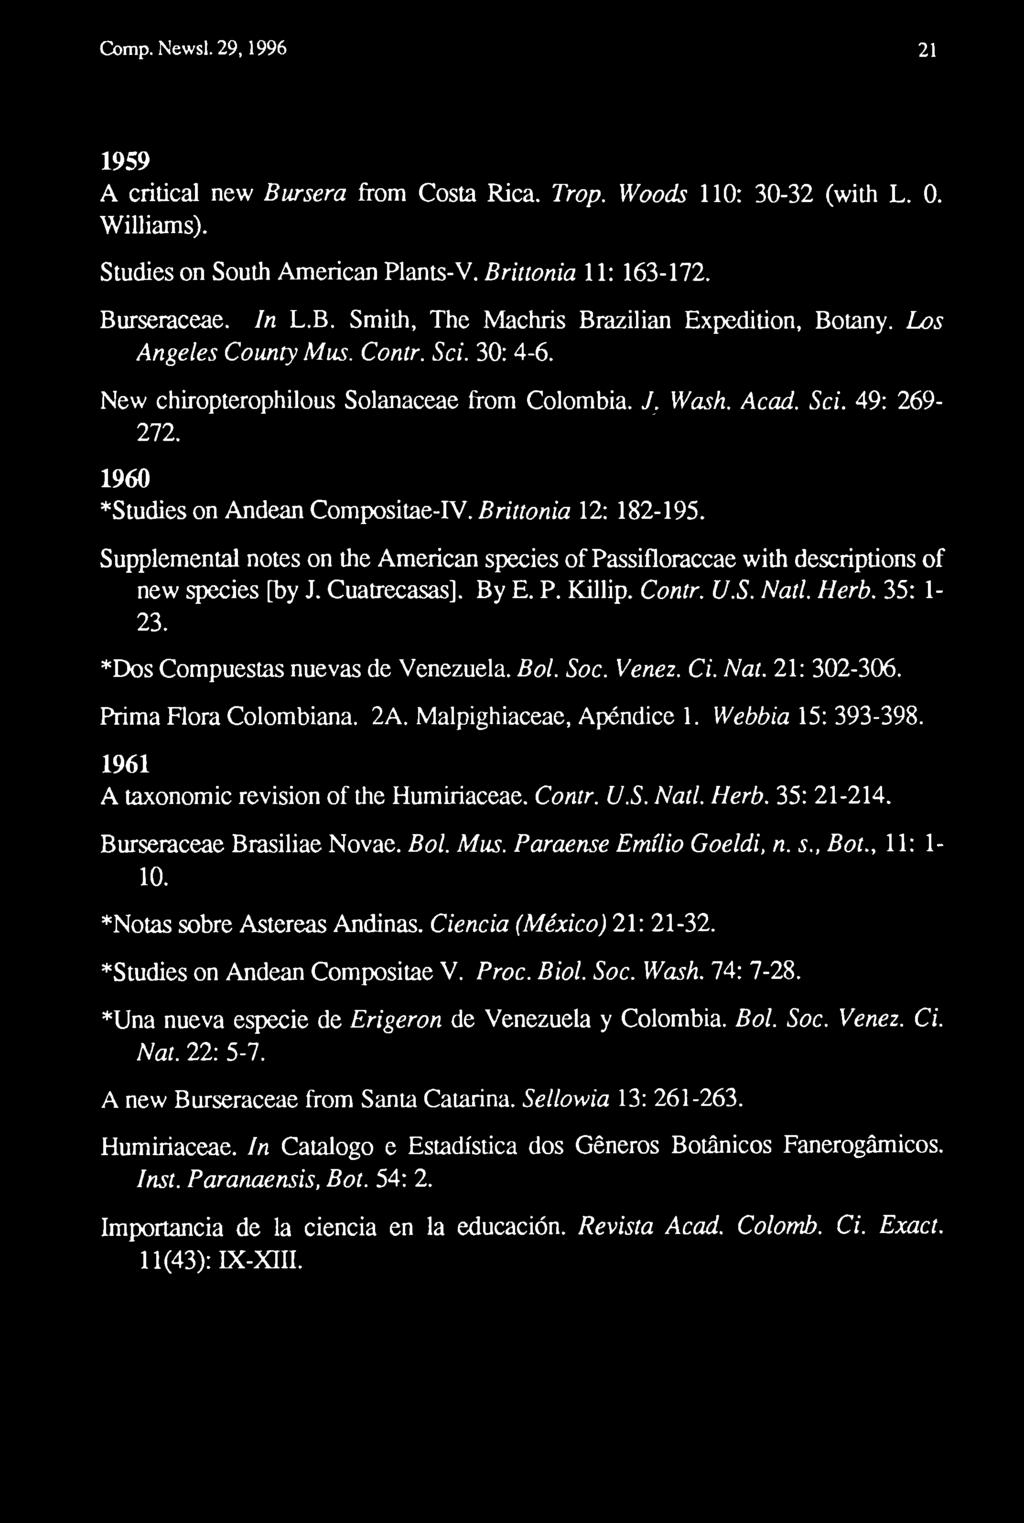 Cc Hip Slliraie Newsilettieic Pdf Expedition E 6401 M Steel Black White Supplemental Notes On The American Species Of Passifloraccae With Descriptions New By J